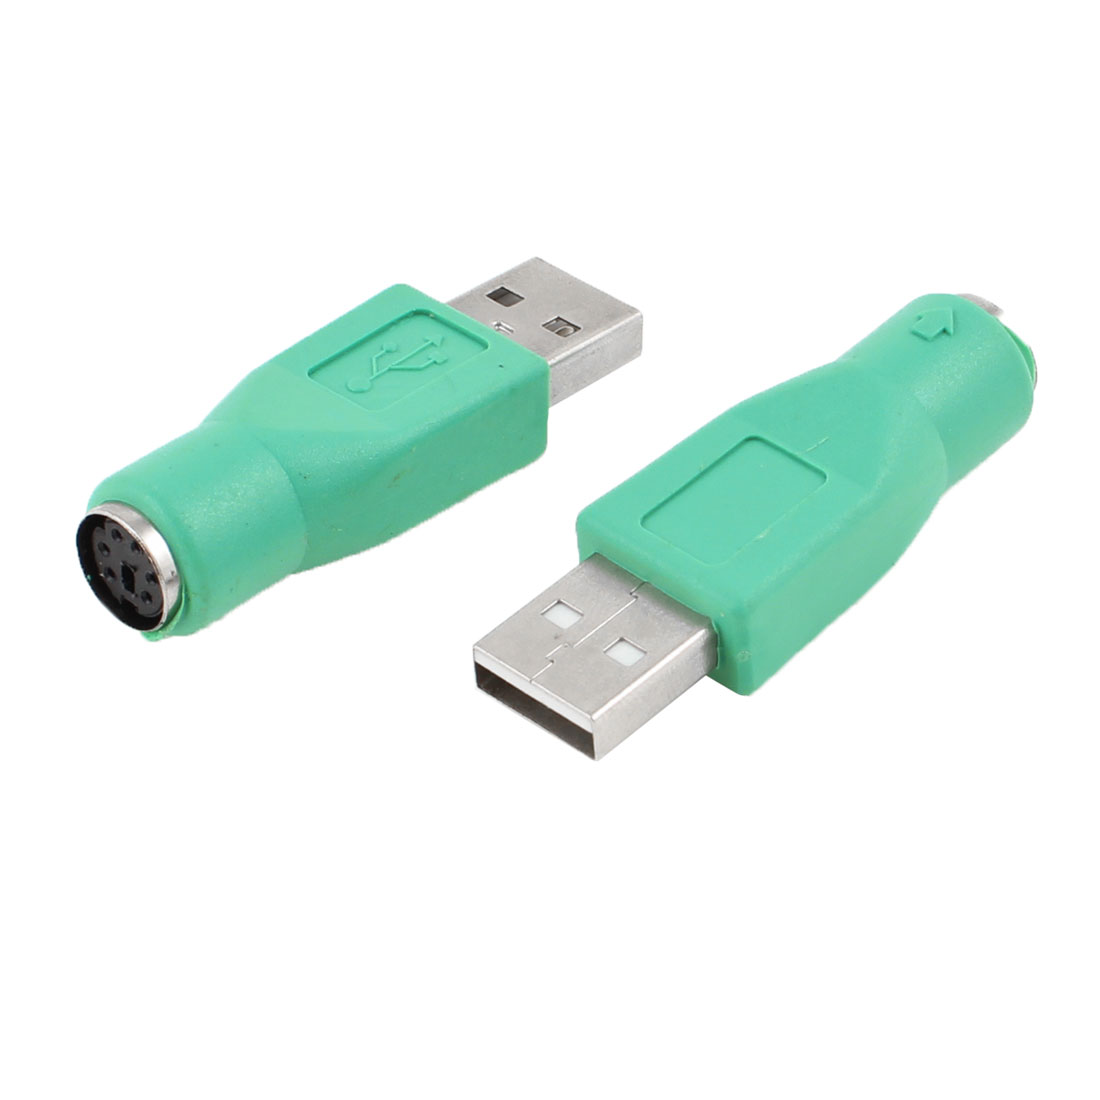 2 Pcs Cyan USB 2.0 Male to PS/2 Female Mouse Keyboard Adapter Connector